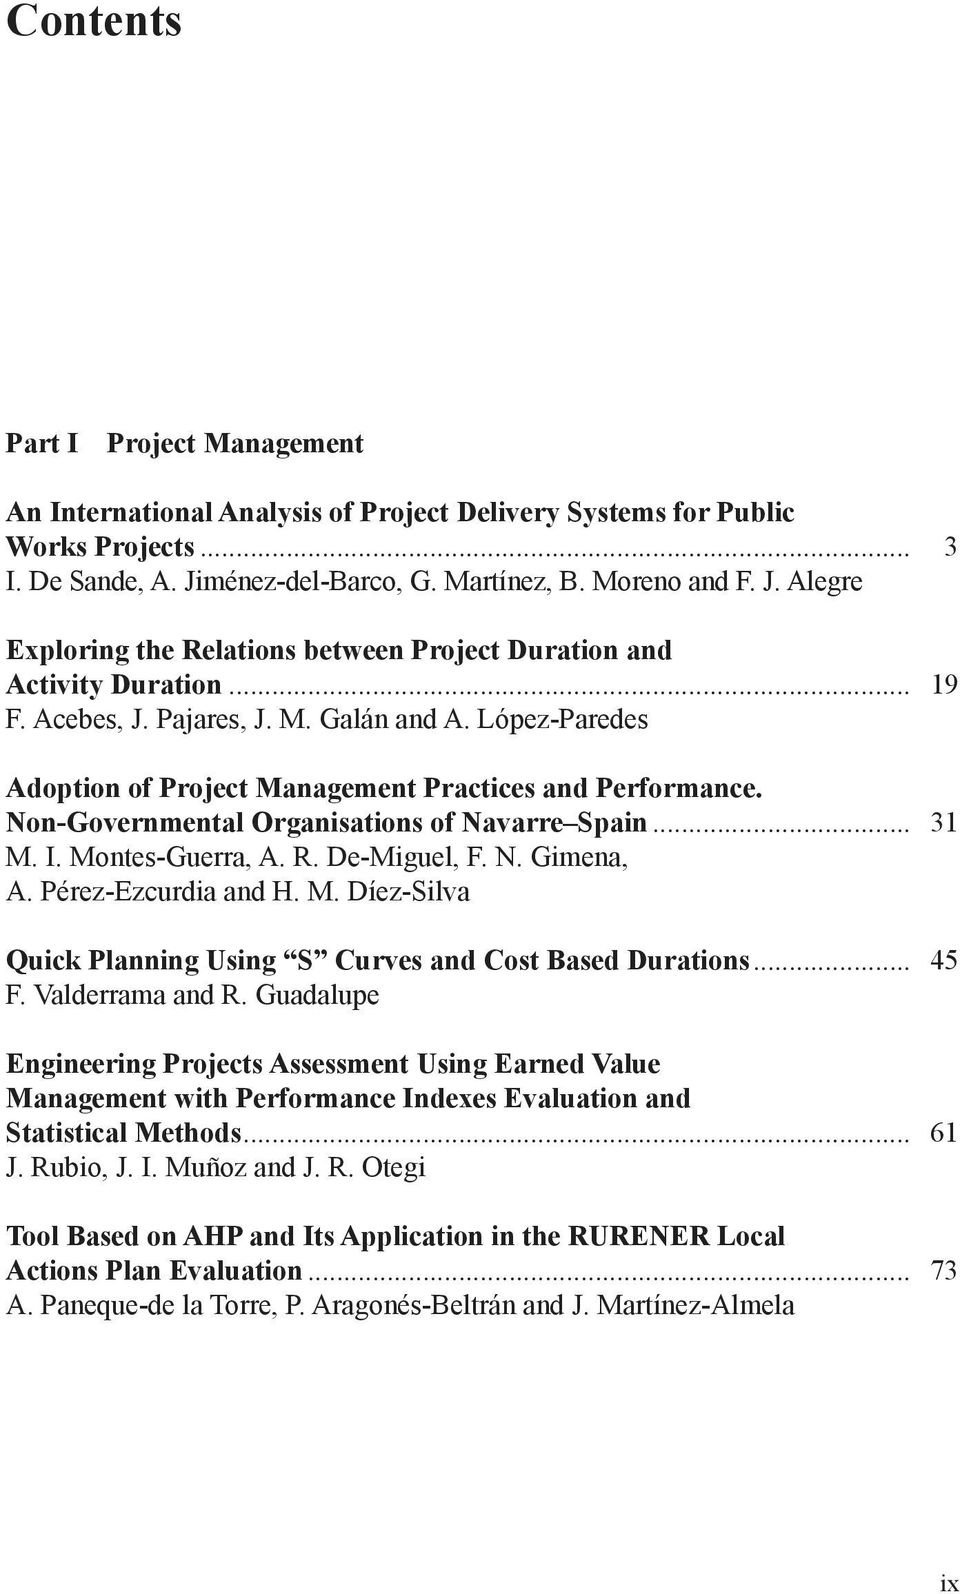 López-Paredes Adoption of Project Management Practices and Performance. Non-Governmental Organisations of Navarre... 31 M. I. Montes-Guerra, A. R. De-Miguel, F. N. Gimena, A. Pérez-Ezcurdia and H. M. Díez-Silva Quick Planning Using S Curves and Cost Based Durations.